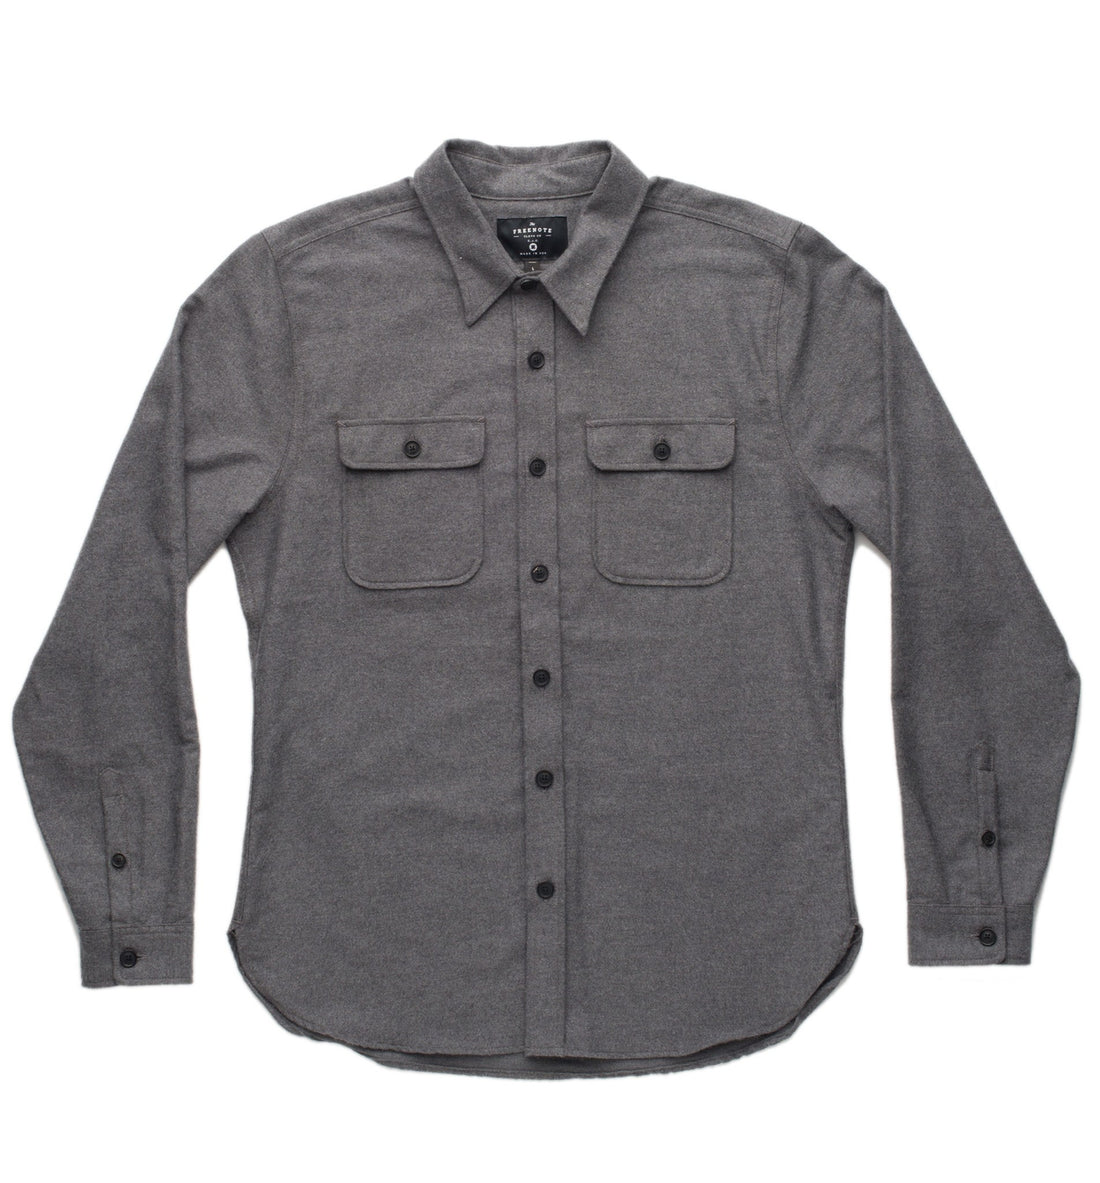 Freenote Gilroy Button Up - Apparel: Men's - Iron and Resin